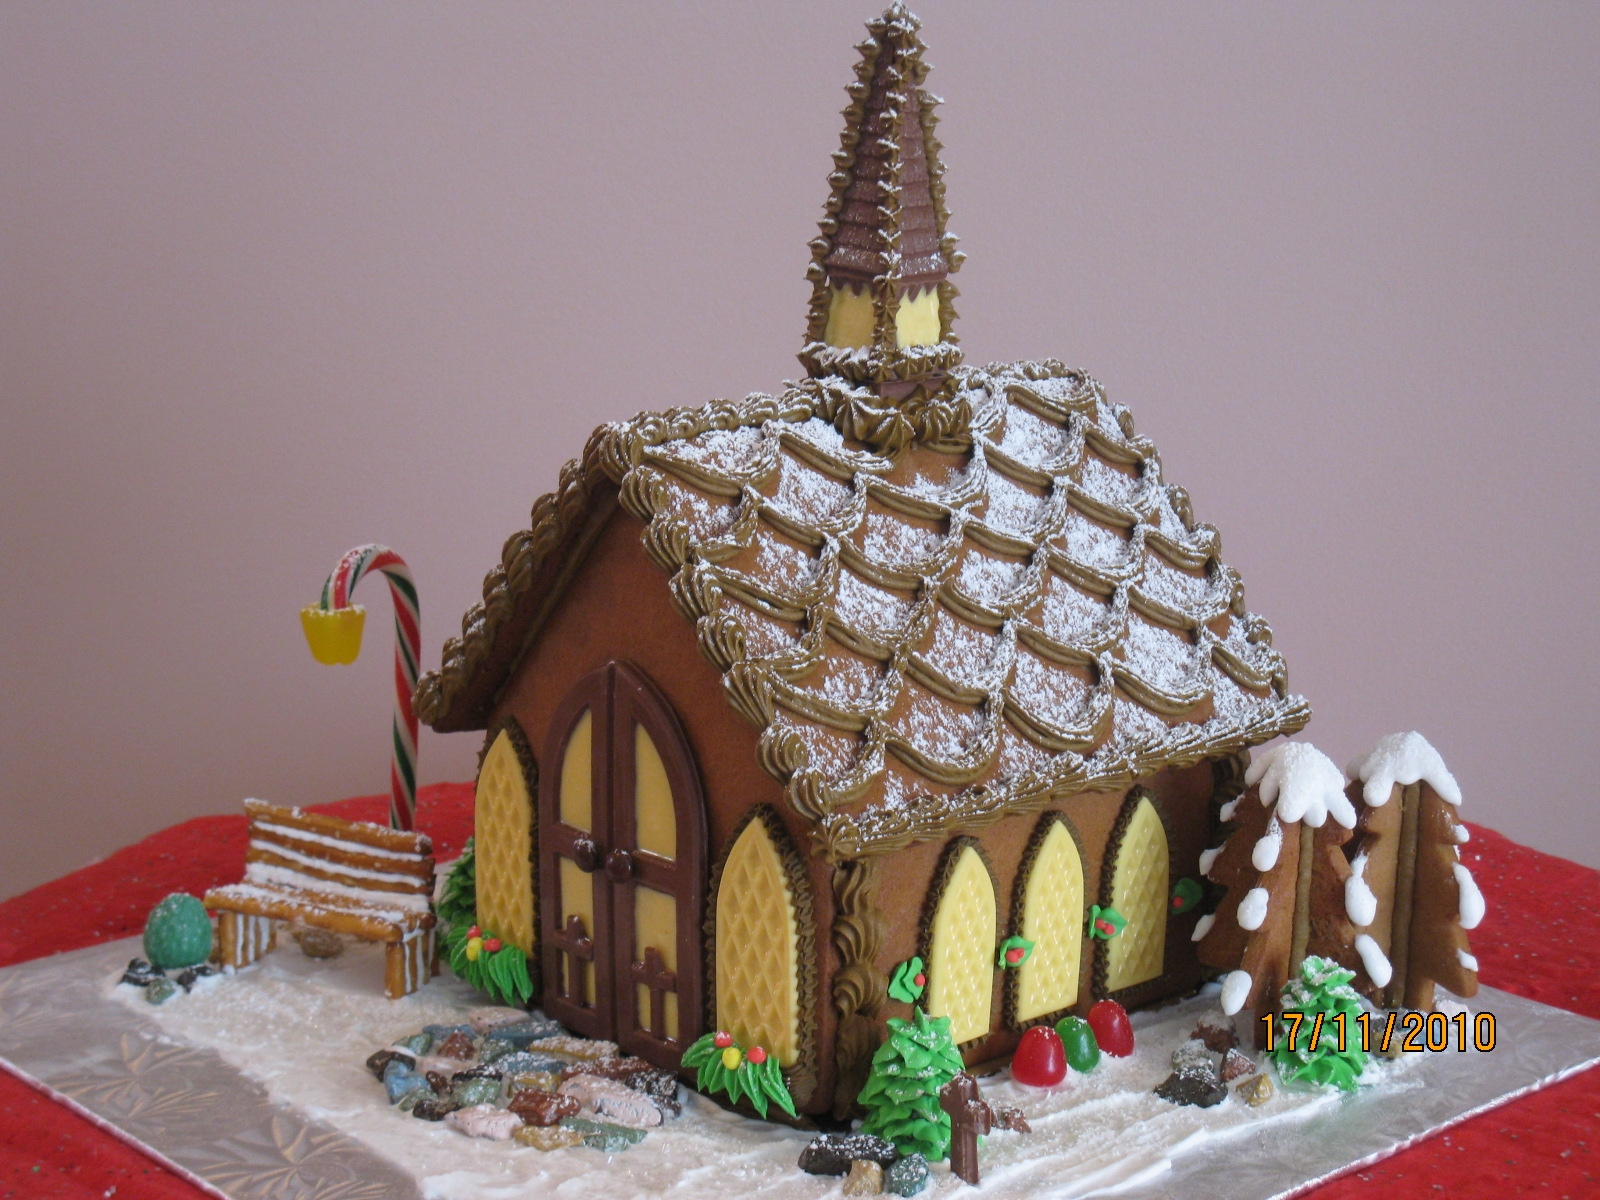 Chocolate steeple, windows and door, and angel on back wall.  Wreath is gingerbread cookie iced with royal icing. All decorations are edible.